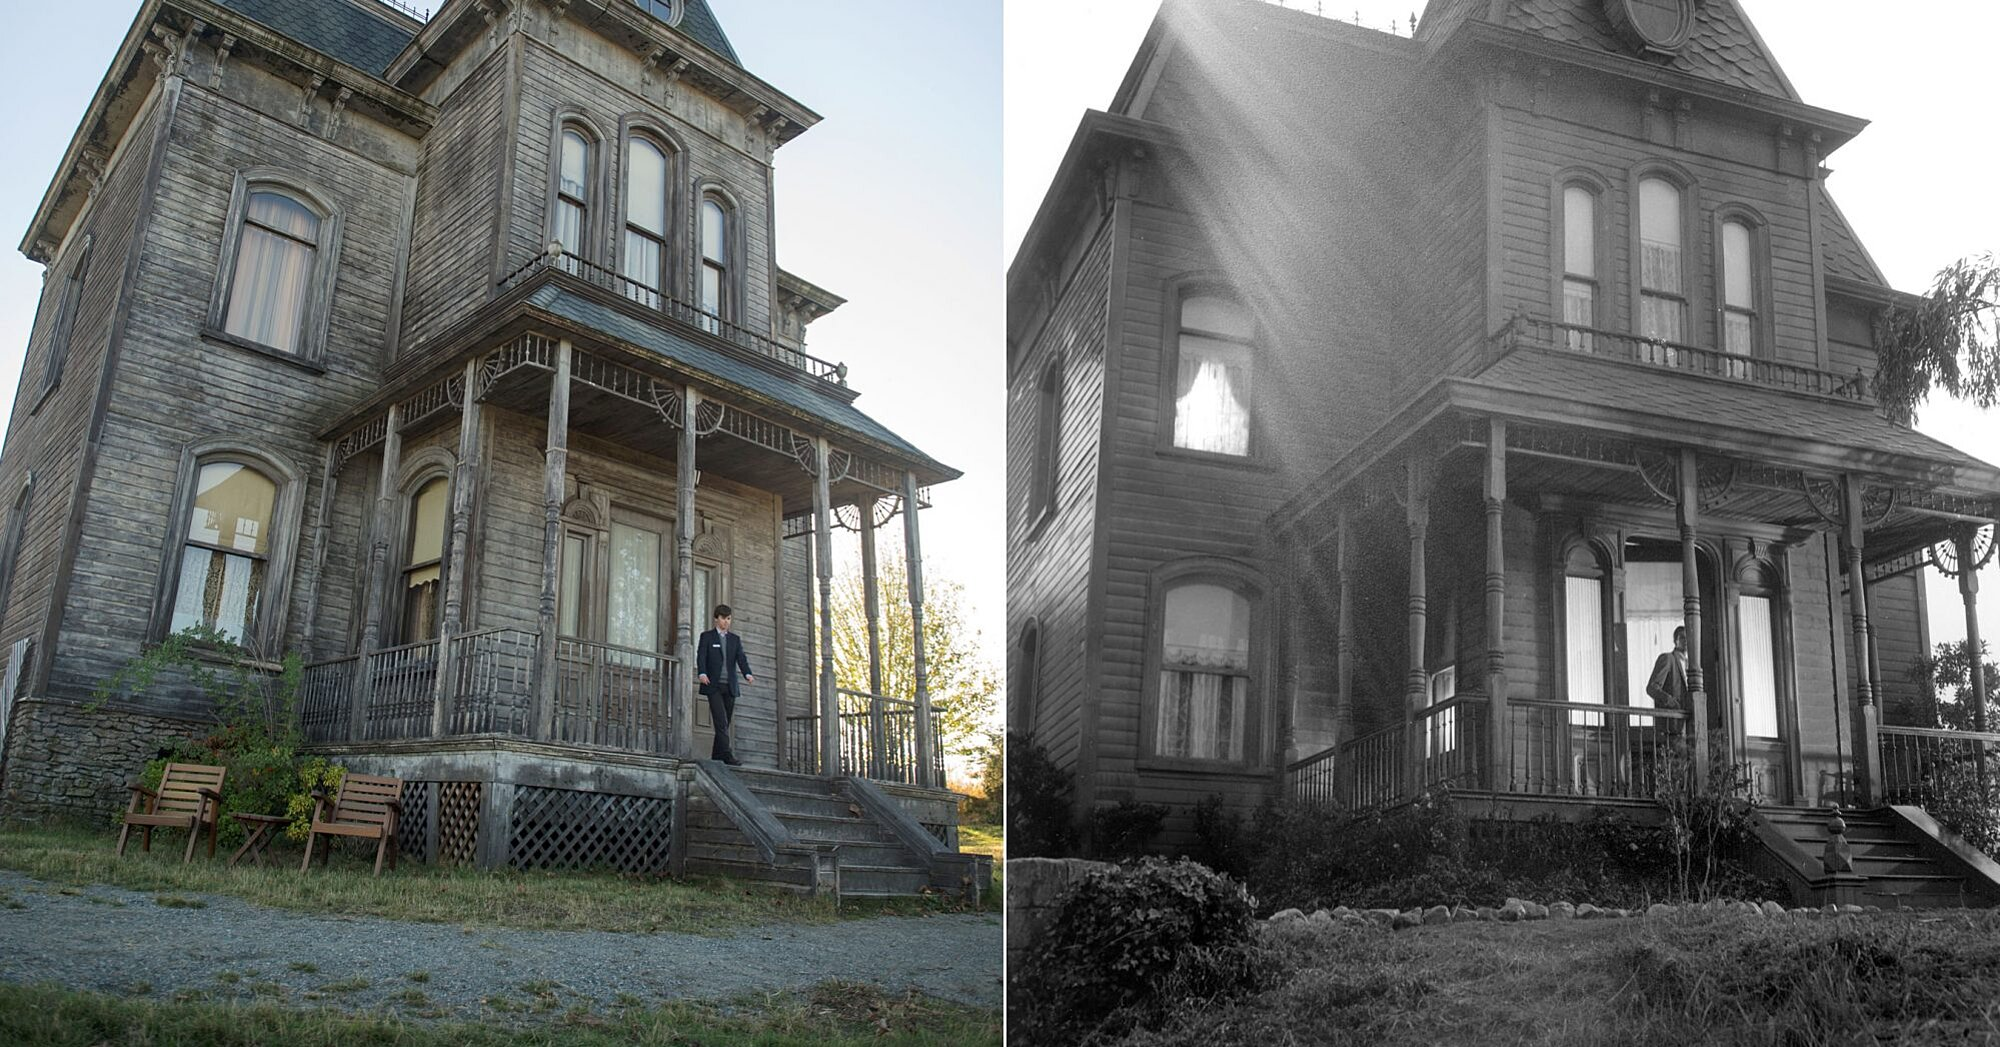 Bates Motel How To Build The Creepiest Place On Earth Ew Com